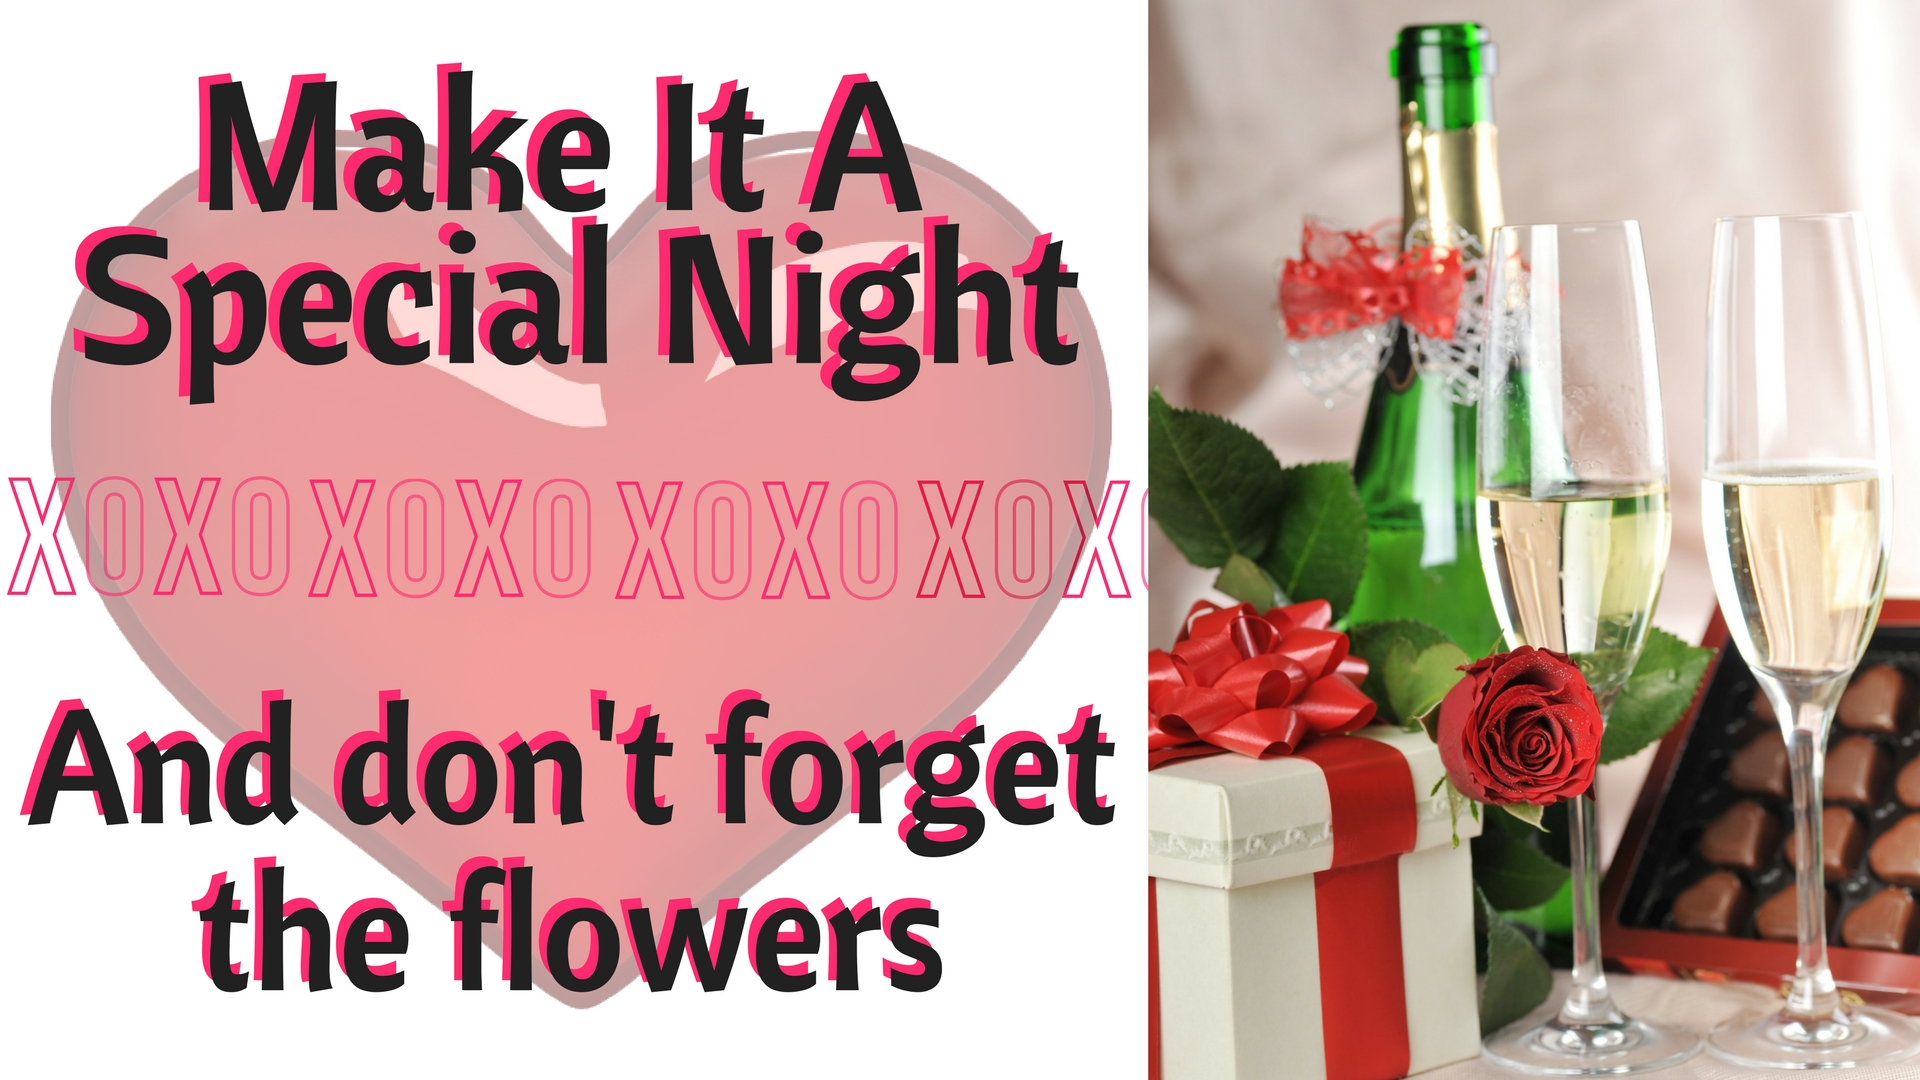 Classy Flowers Valentines Day Card Message Ideas Houston Tx Texas Tips Creating A Day Card Message Valentine S Day Card Messages Valentine Day Card Messages Husband cards Valentines Day Card Messages